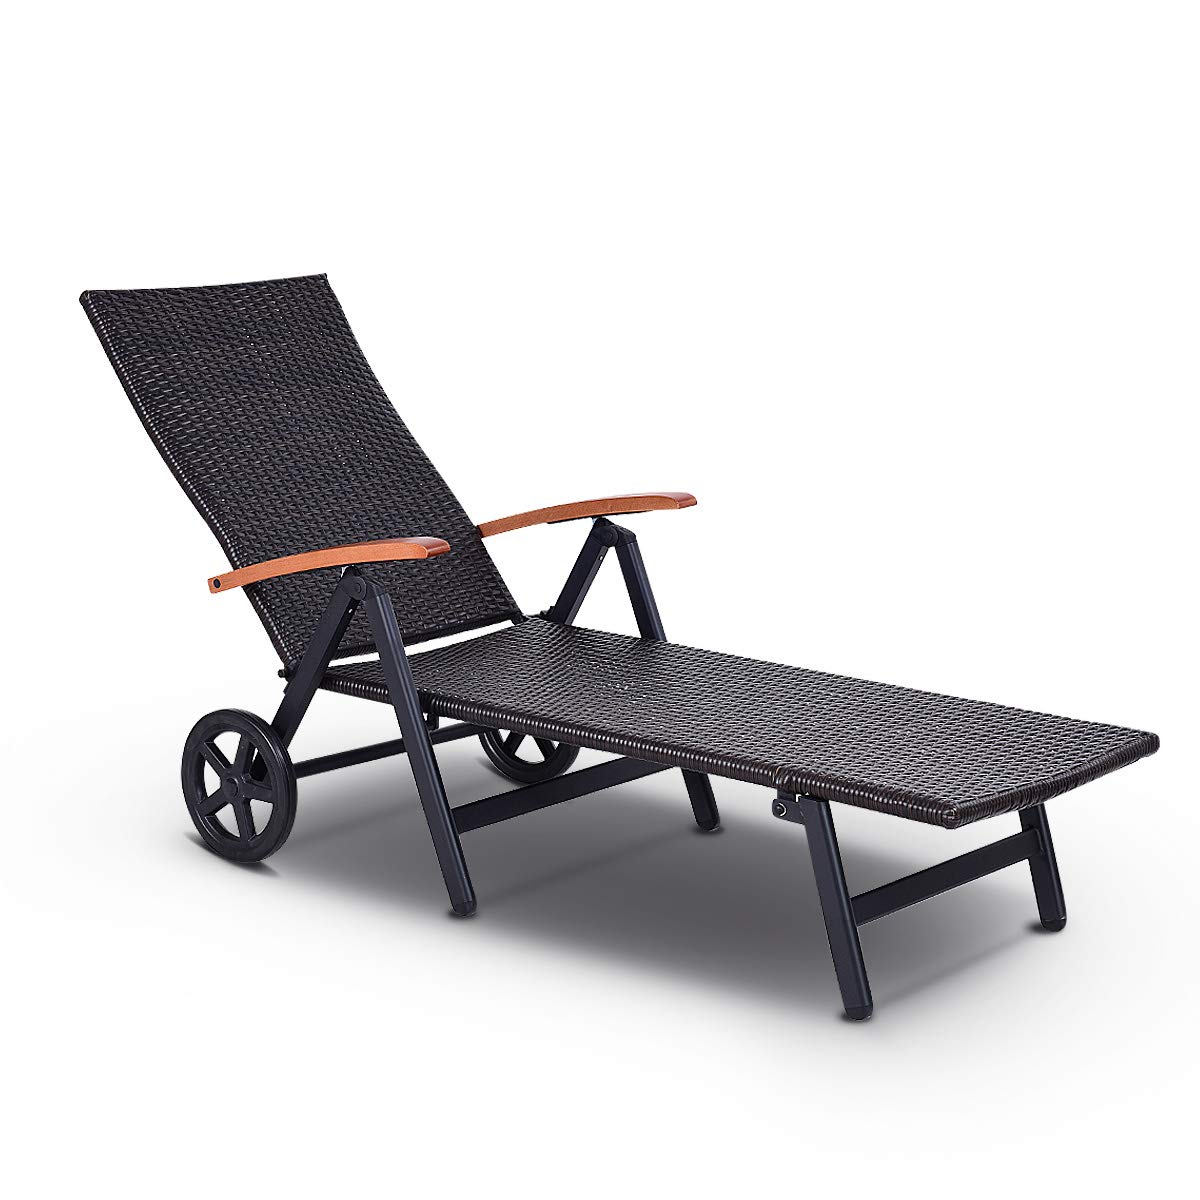 TANGKULA Wicker Chaise Folding Back Adjustable Aluminum Rattan Lounger Recliner Chair W/Wheels (Mix Brown) by Tangkula